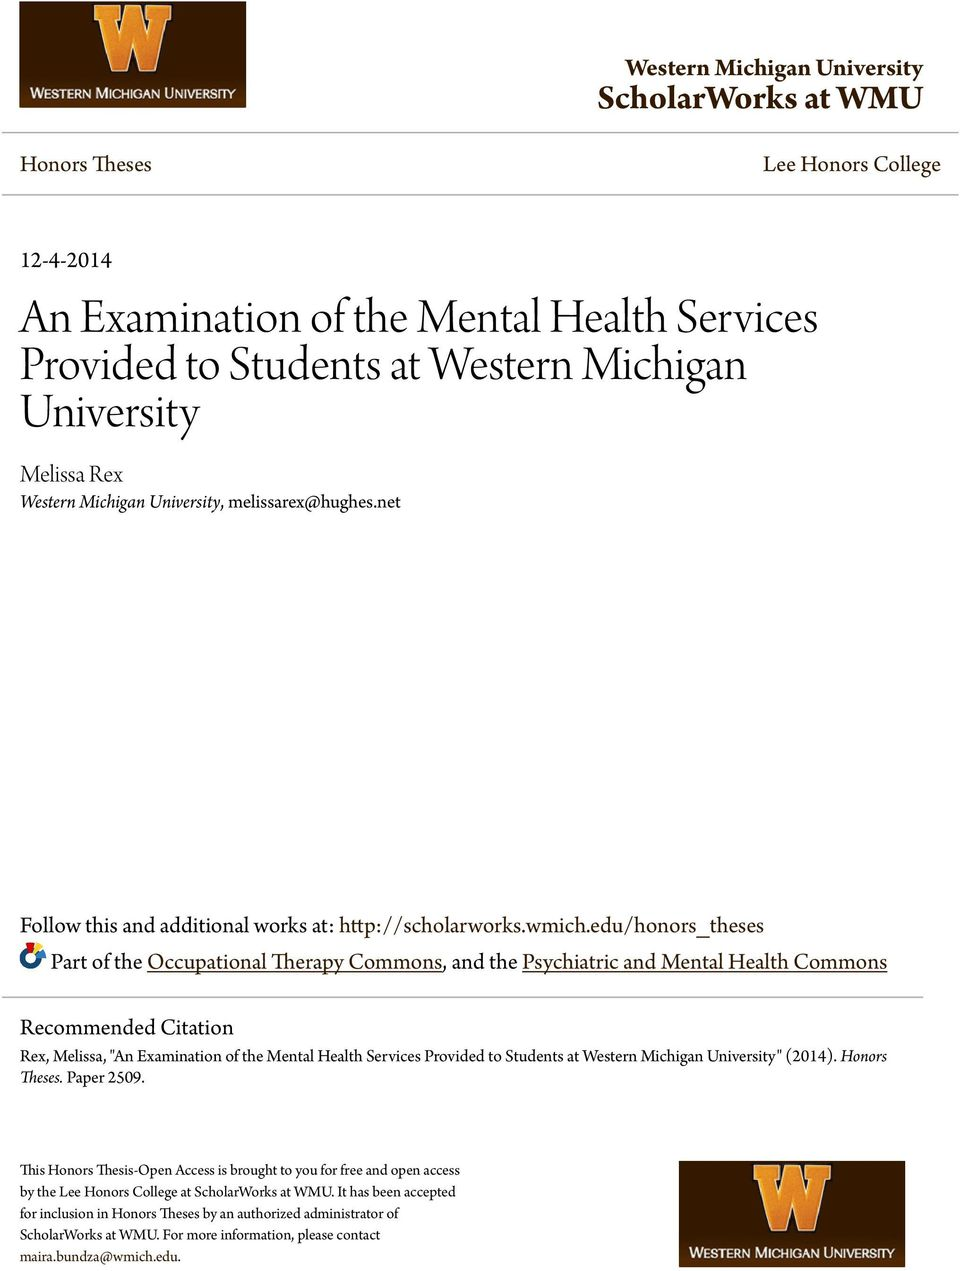 Mental Health Counseling help essays